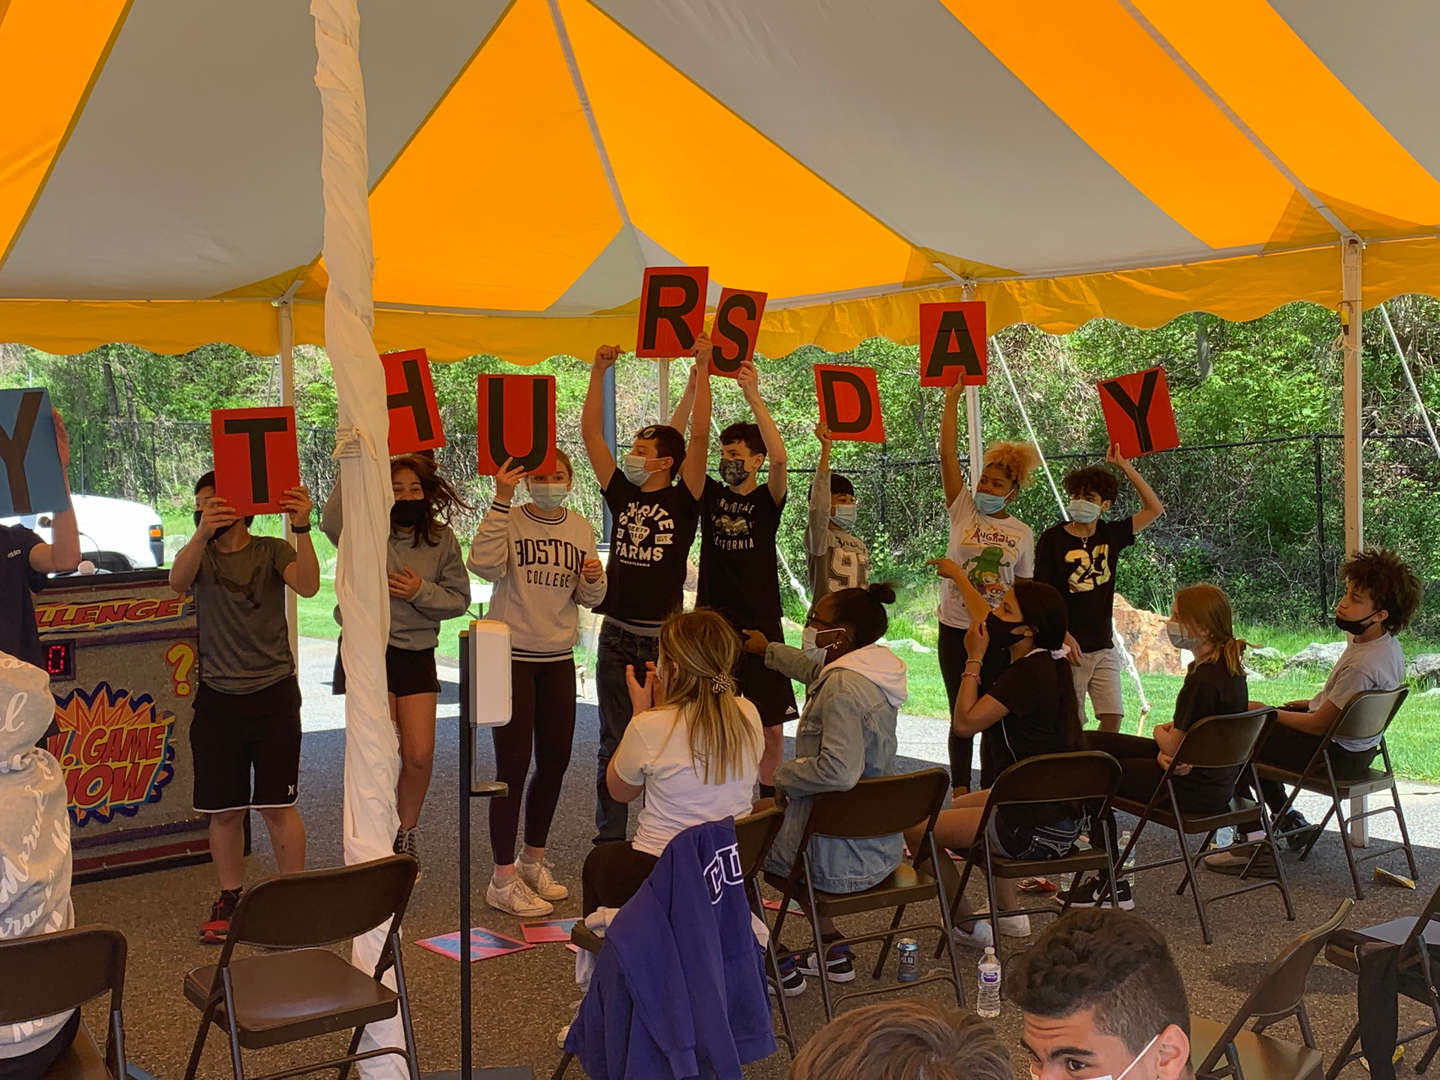 Eighth-graders hold up signs that spell out Thursday during a game show on campus.